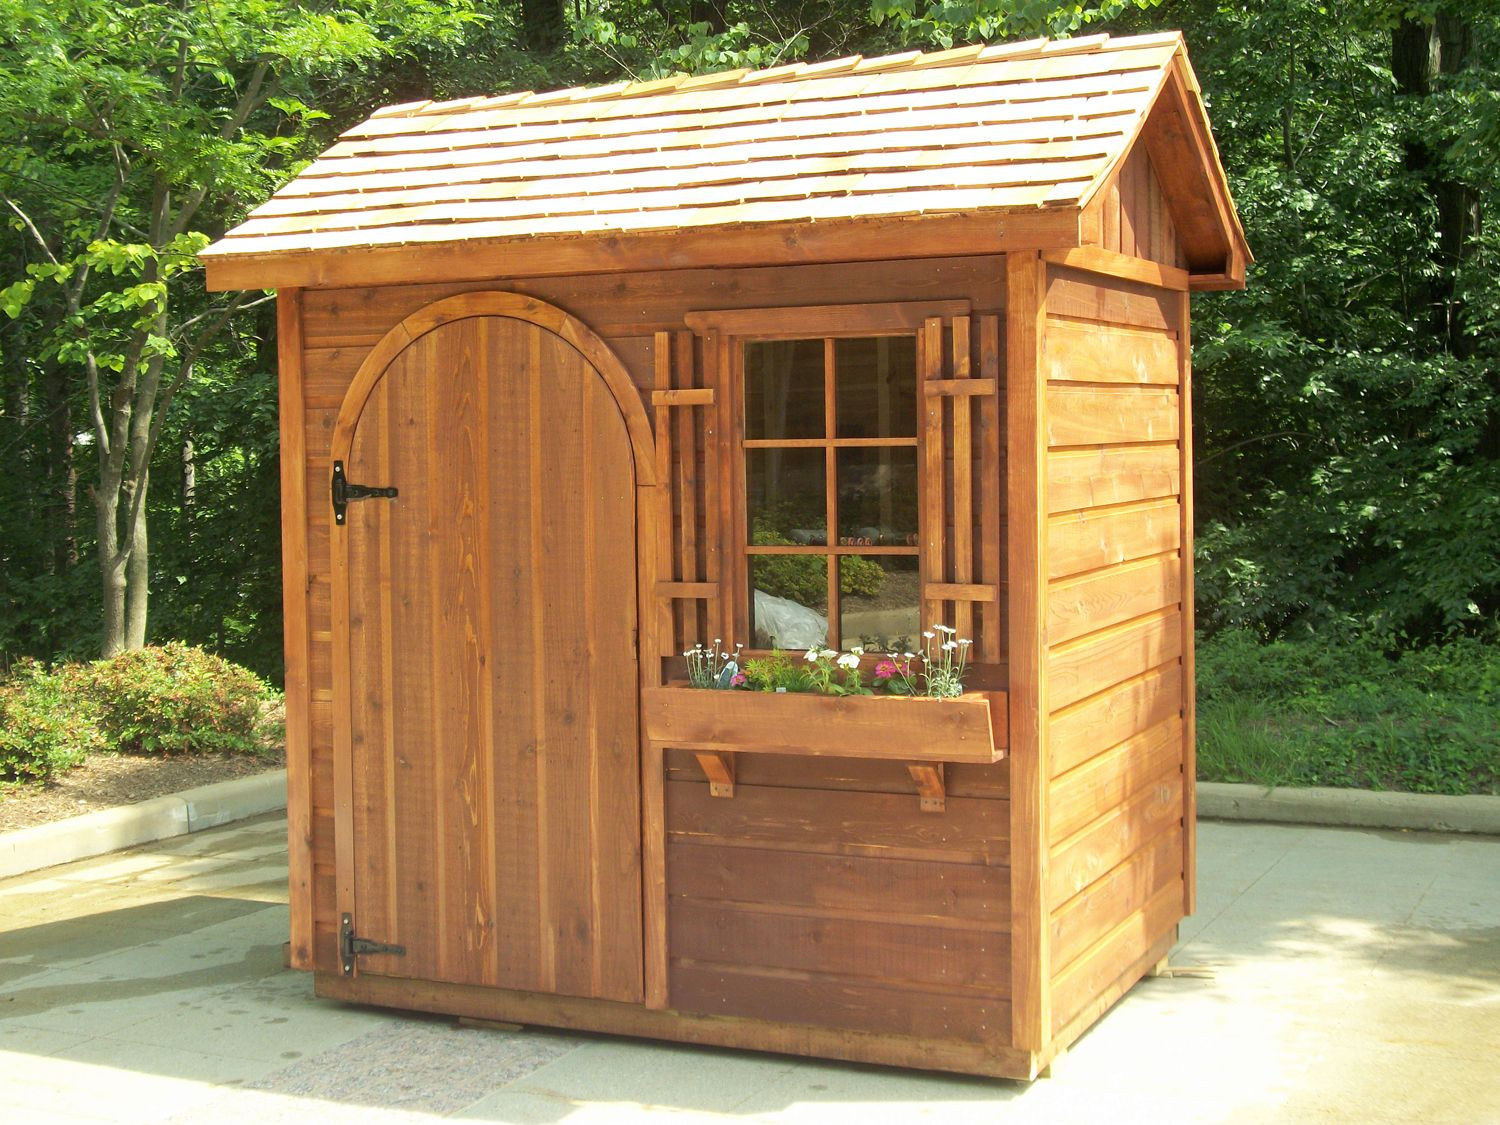 How to build a small storage shed ehow Storage sheds are